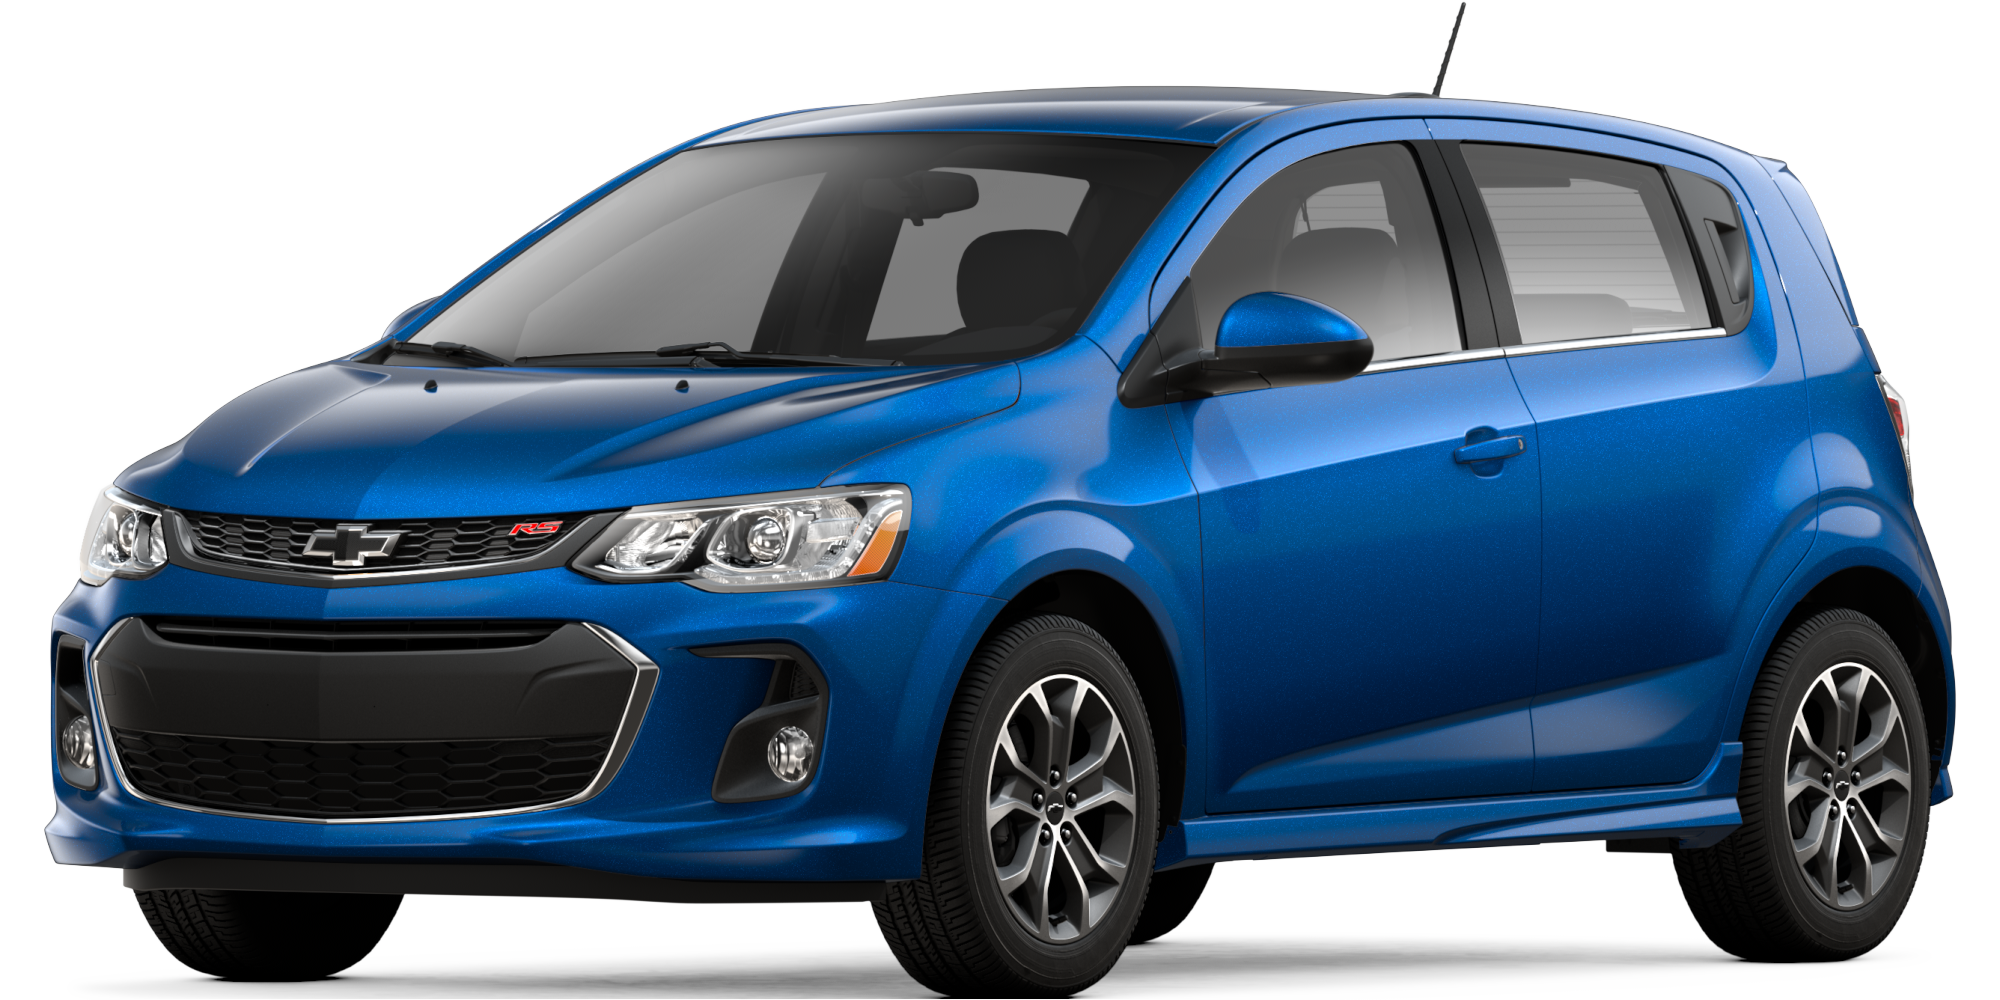 Chevrolet Sonic Repair Manual: Liftgate Window Replacement